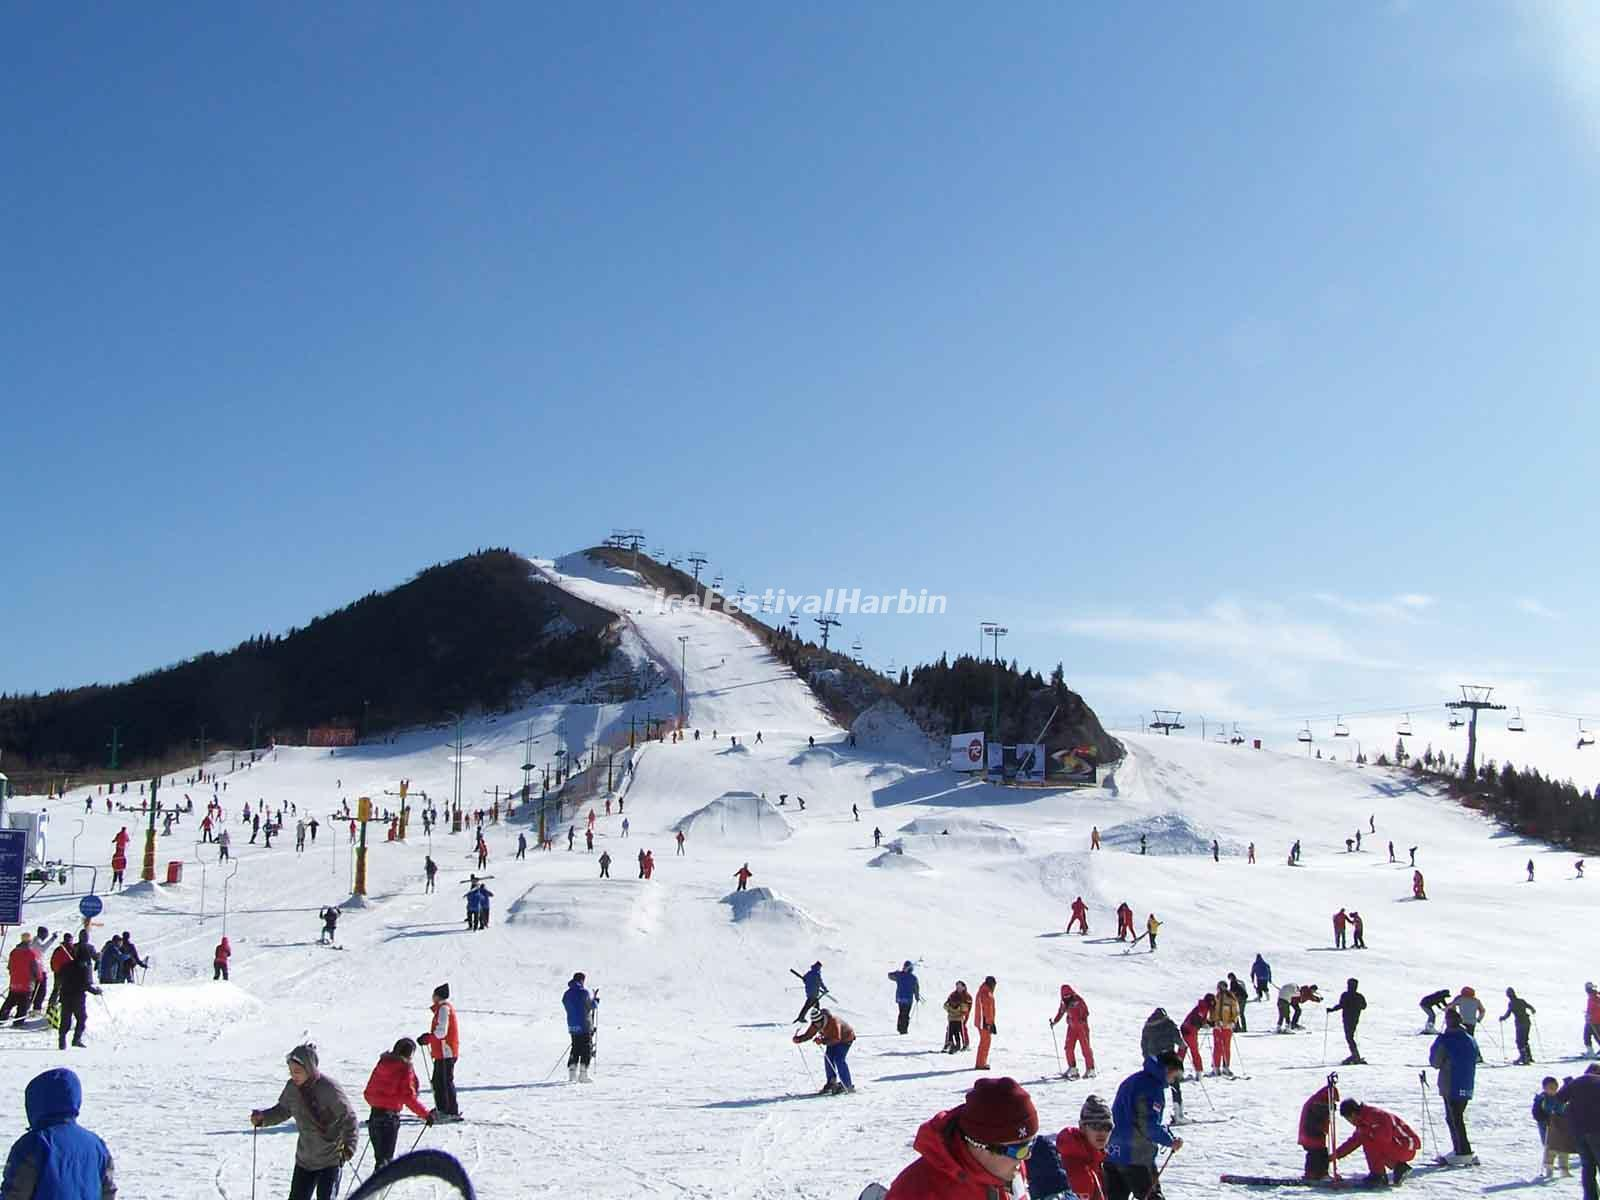 photos of shijinglong ski resort, incredible pictures & images of